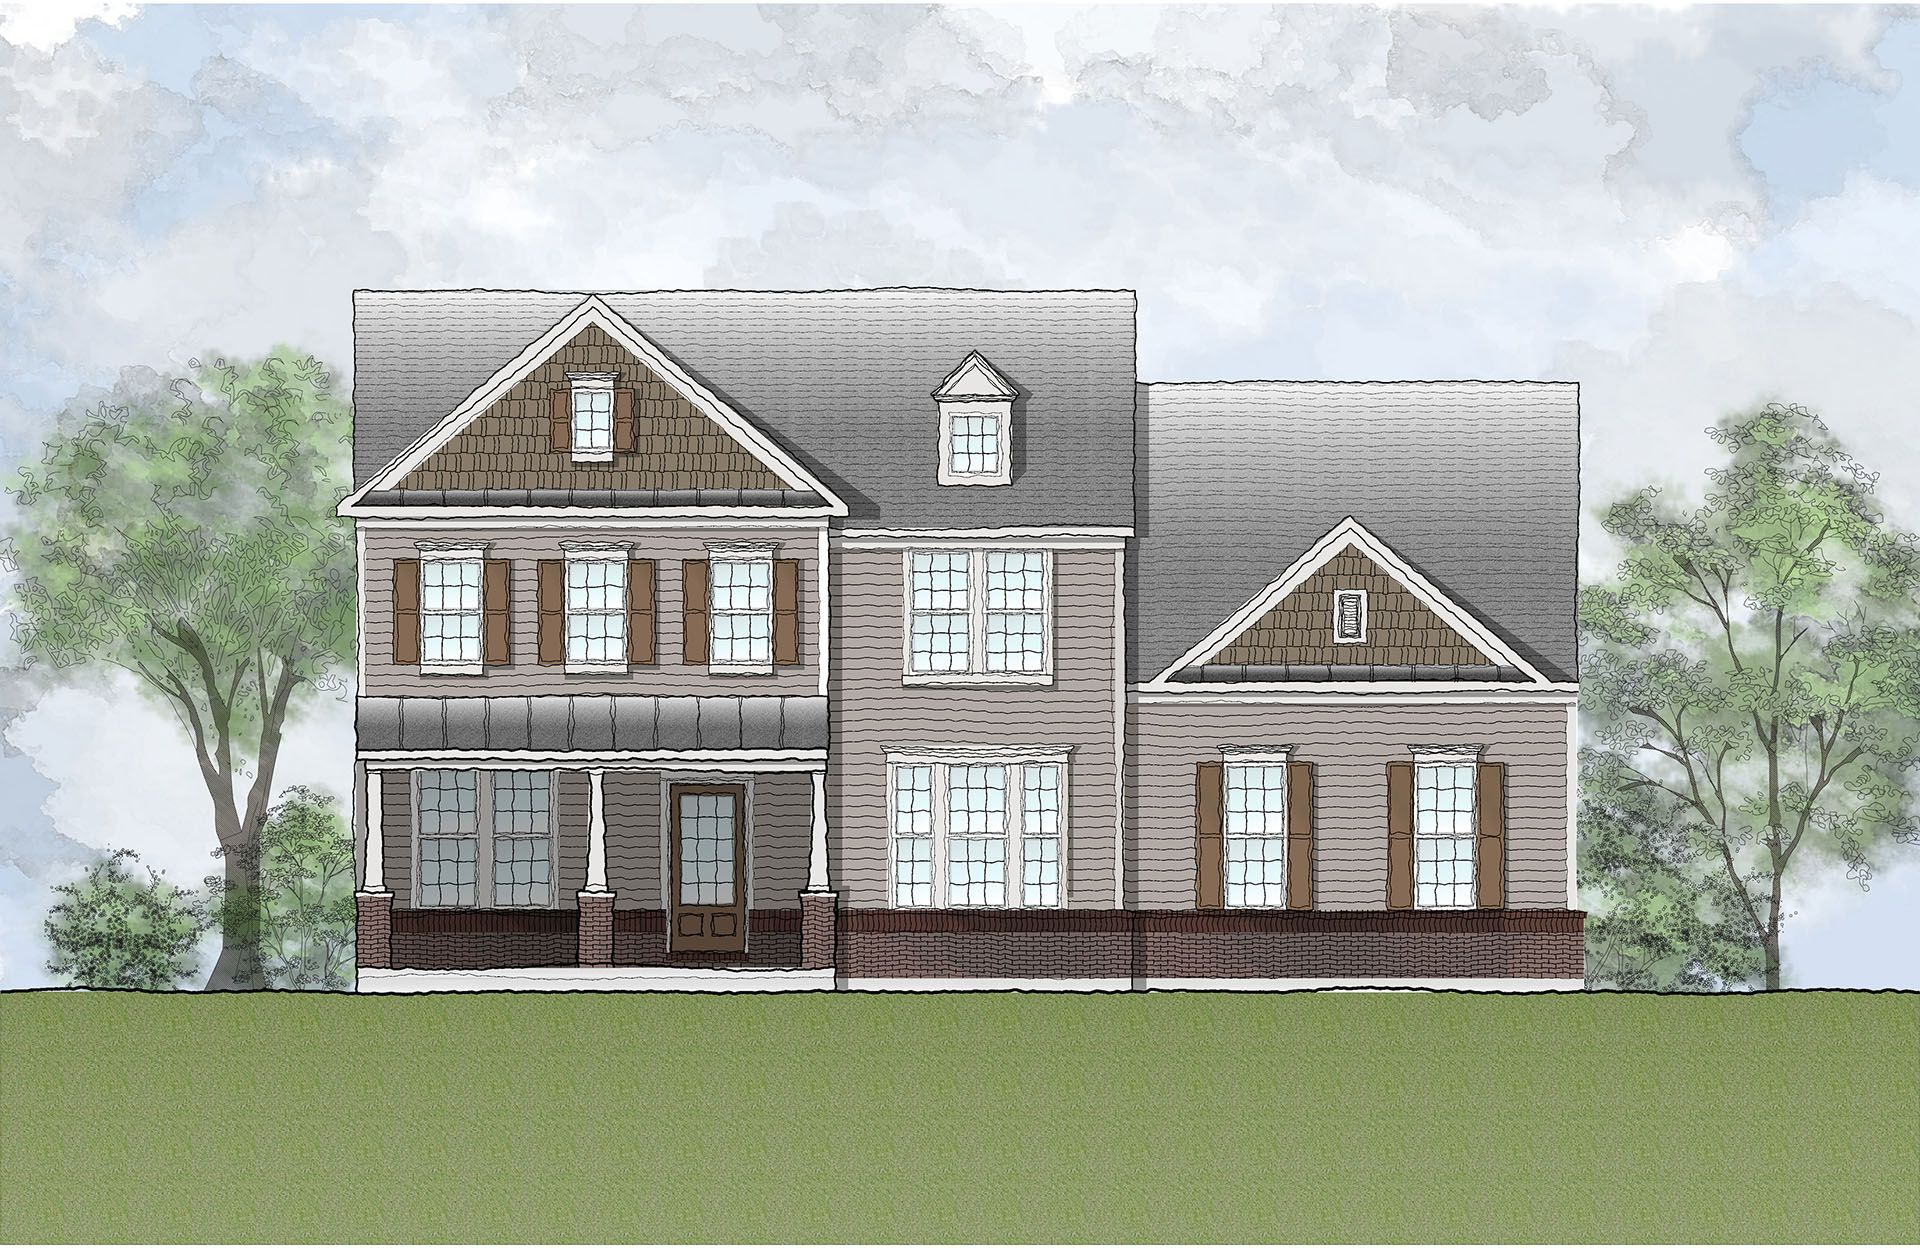 Single Family for Active at Estates At Rocky Pen - Monticello 85 Edgewater Drive Falmouth, Virginia 22405 United States